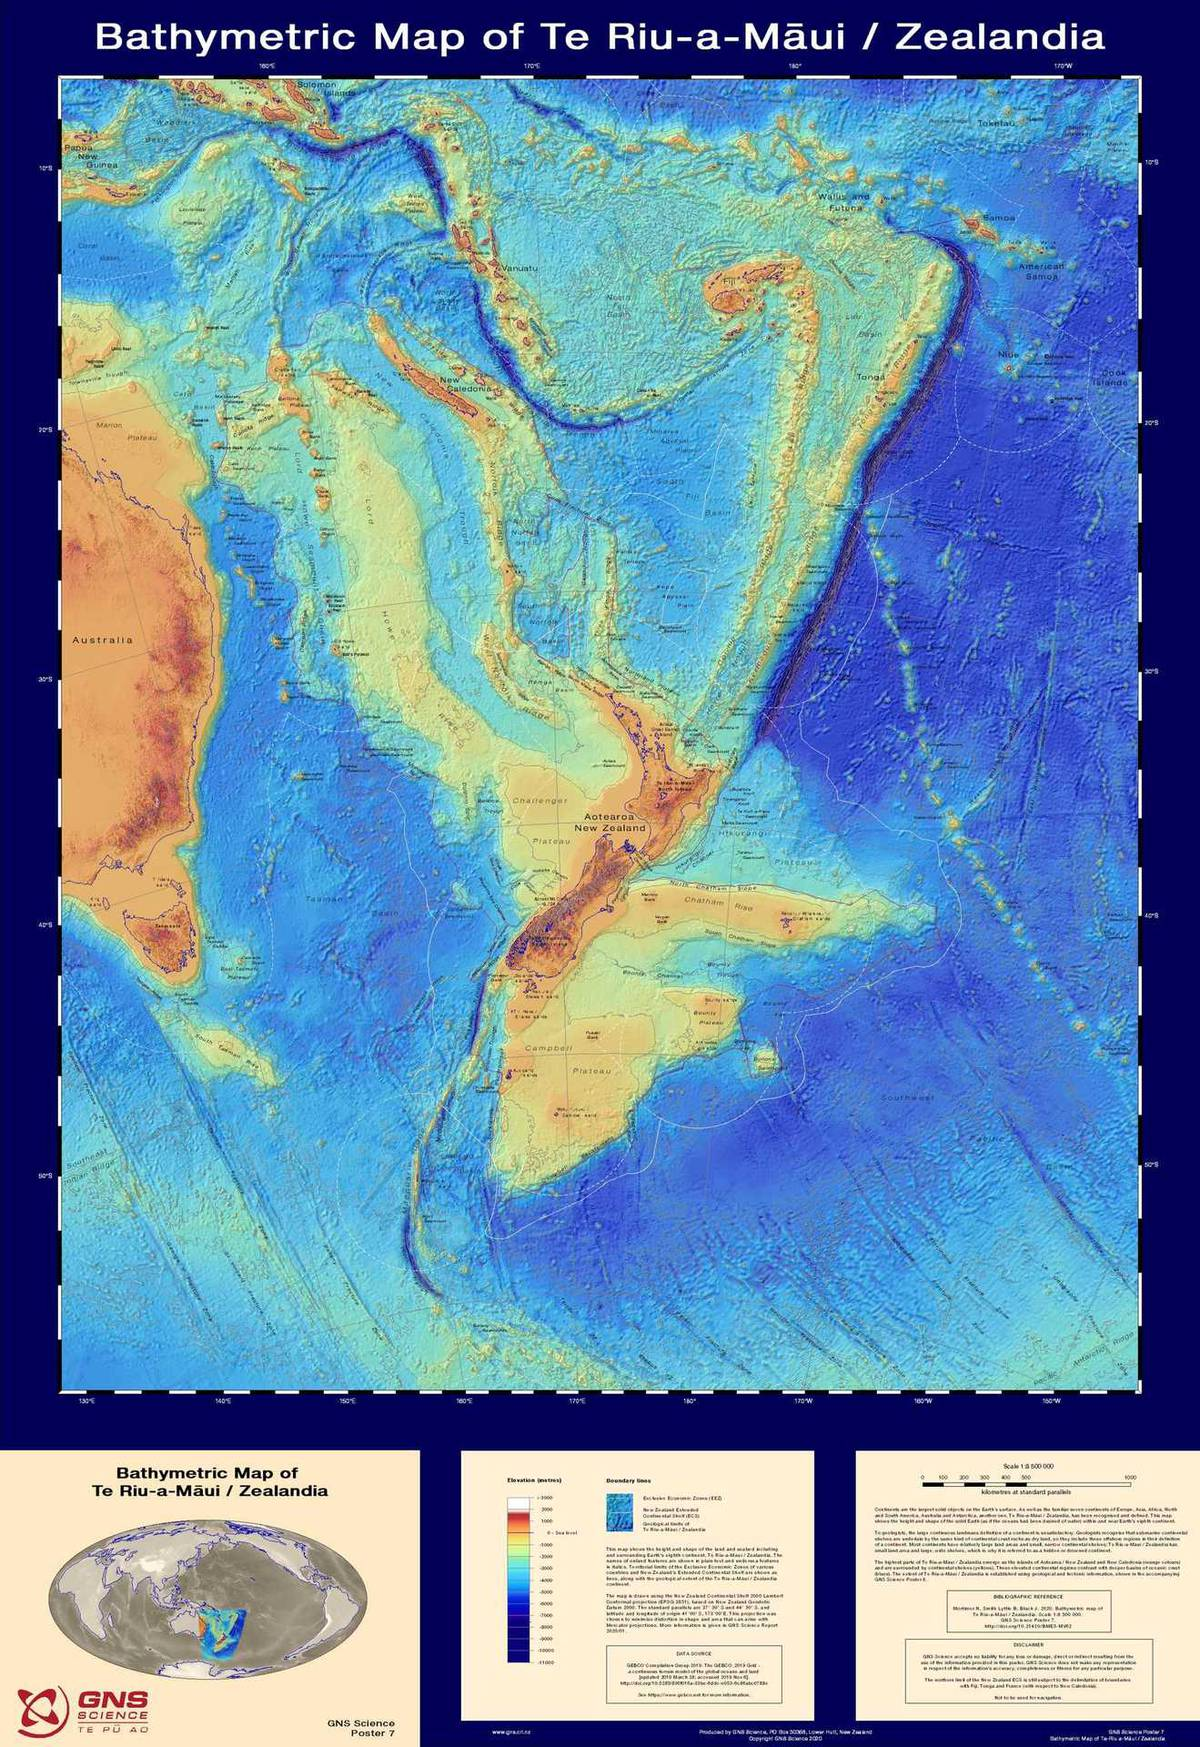 Our lost continent Zealandia - as never seen before